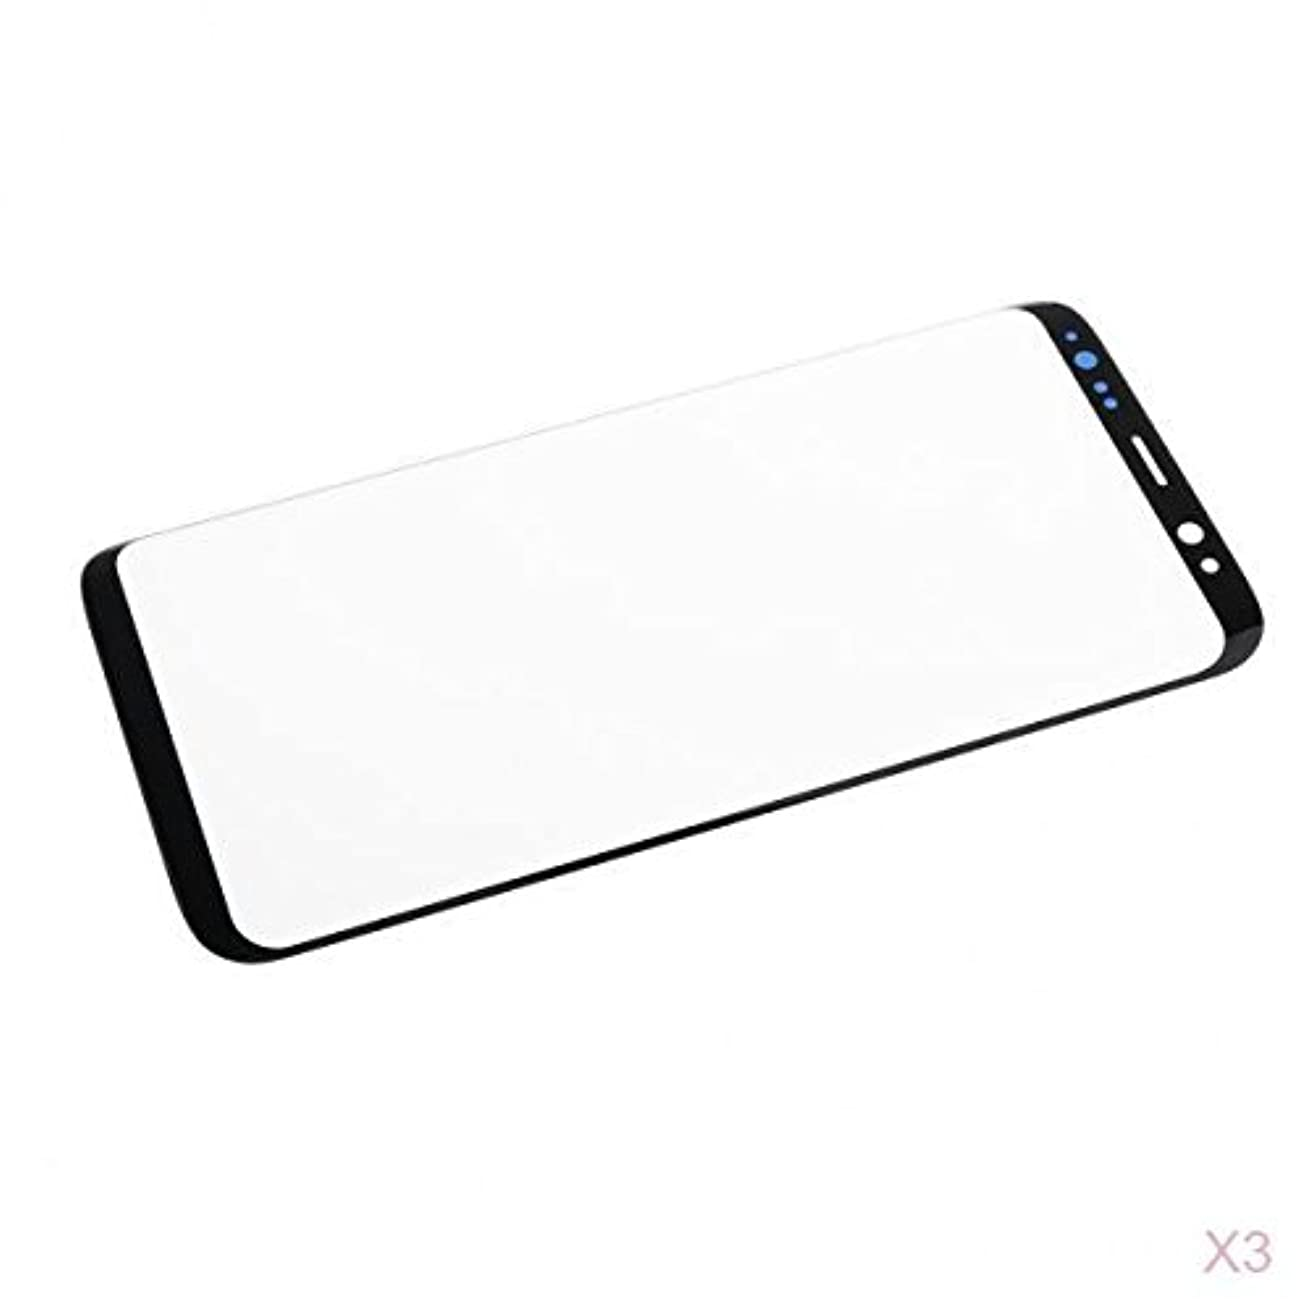 Homyl For Samsung Galaxy S8,3 Pieces Pre-installed LCD Touch Screen Lens Front Glass Outer Lens Cover Black Replacement Repair Part